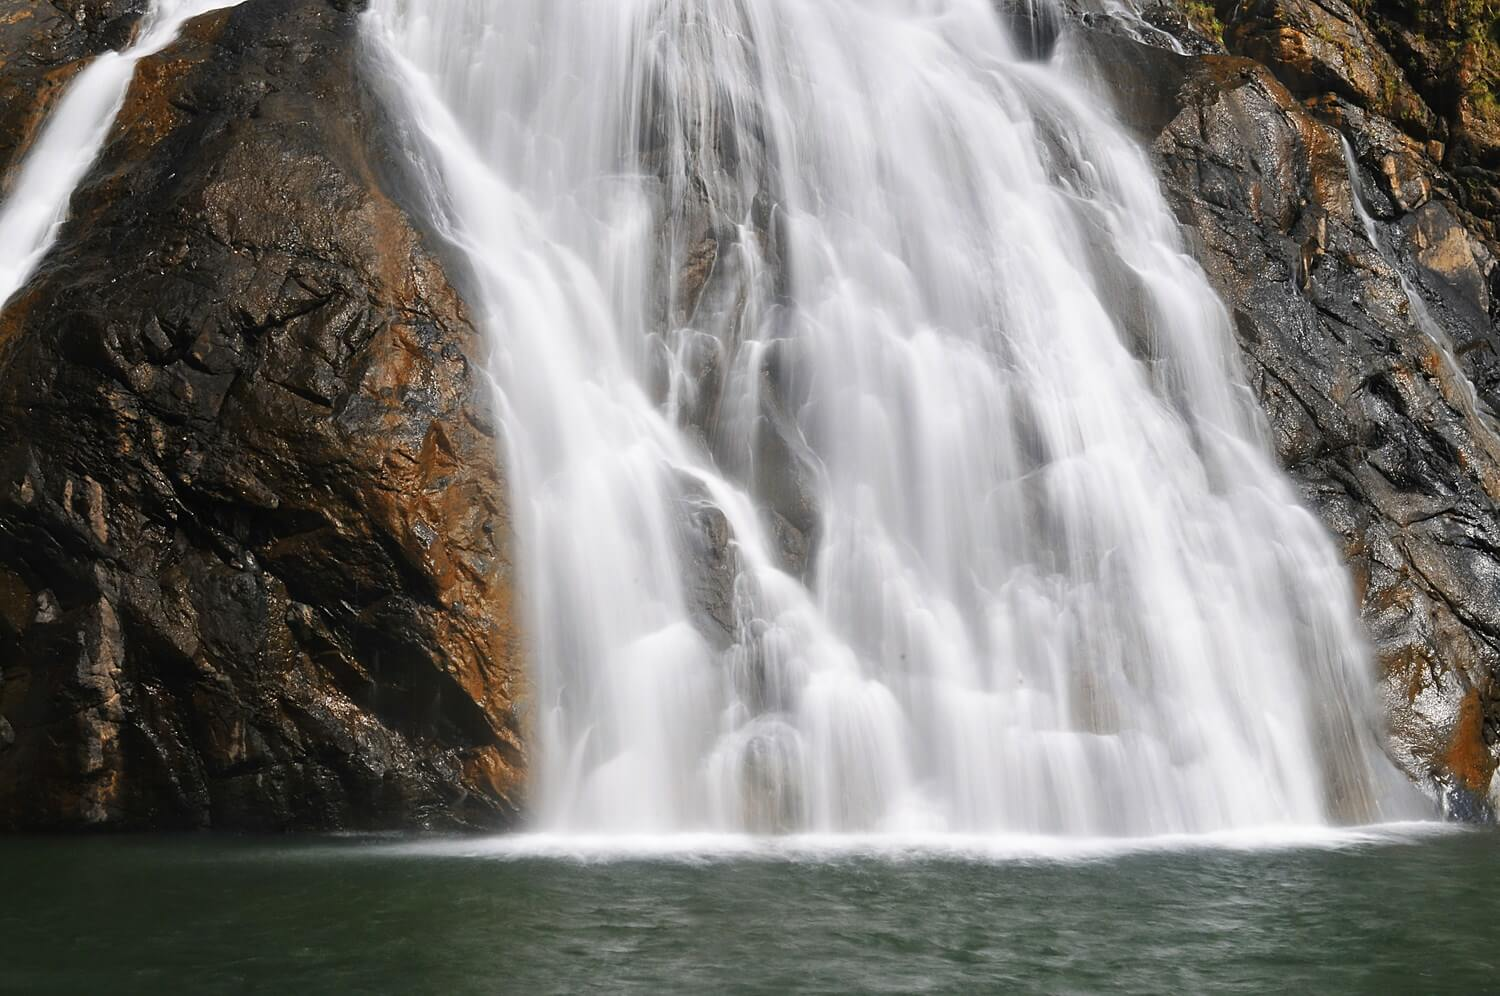 Dudhsagar waterfalls-Goa